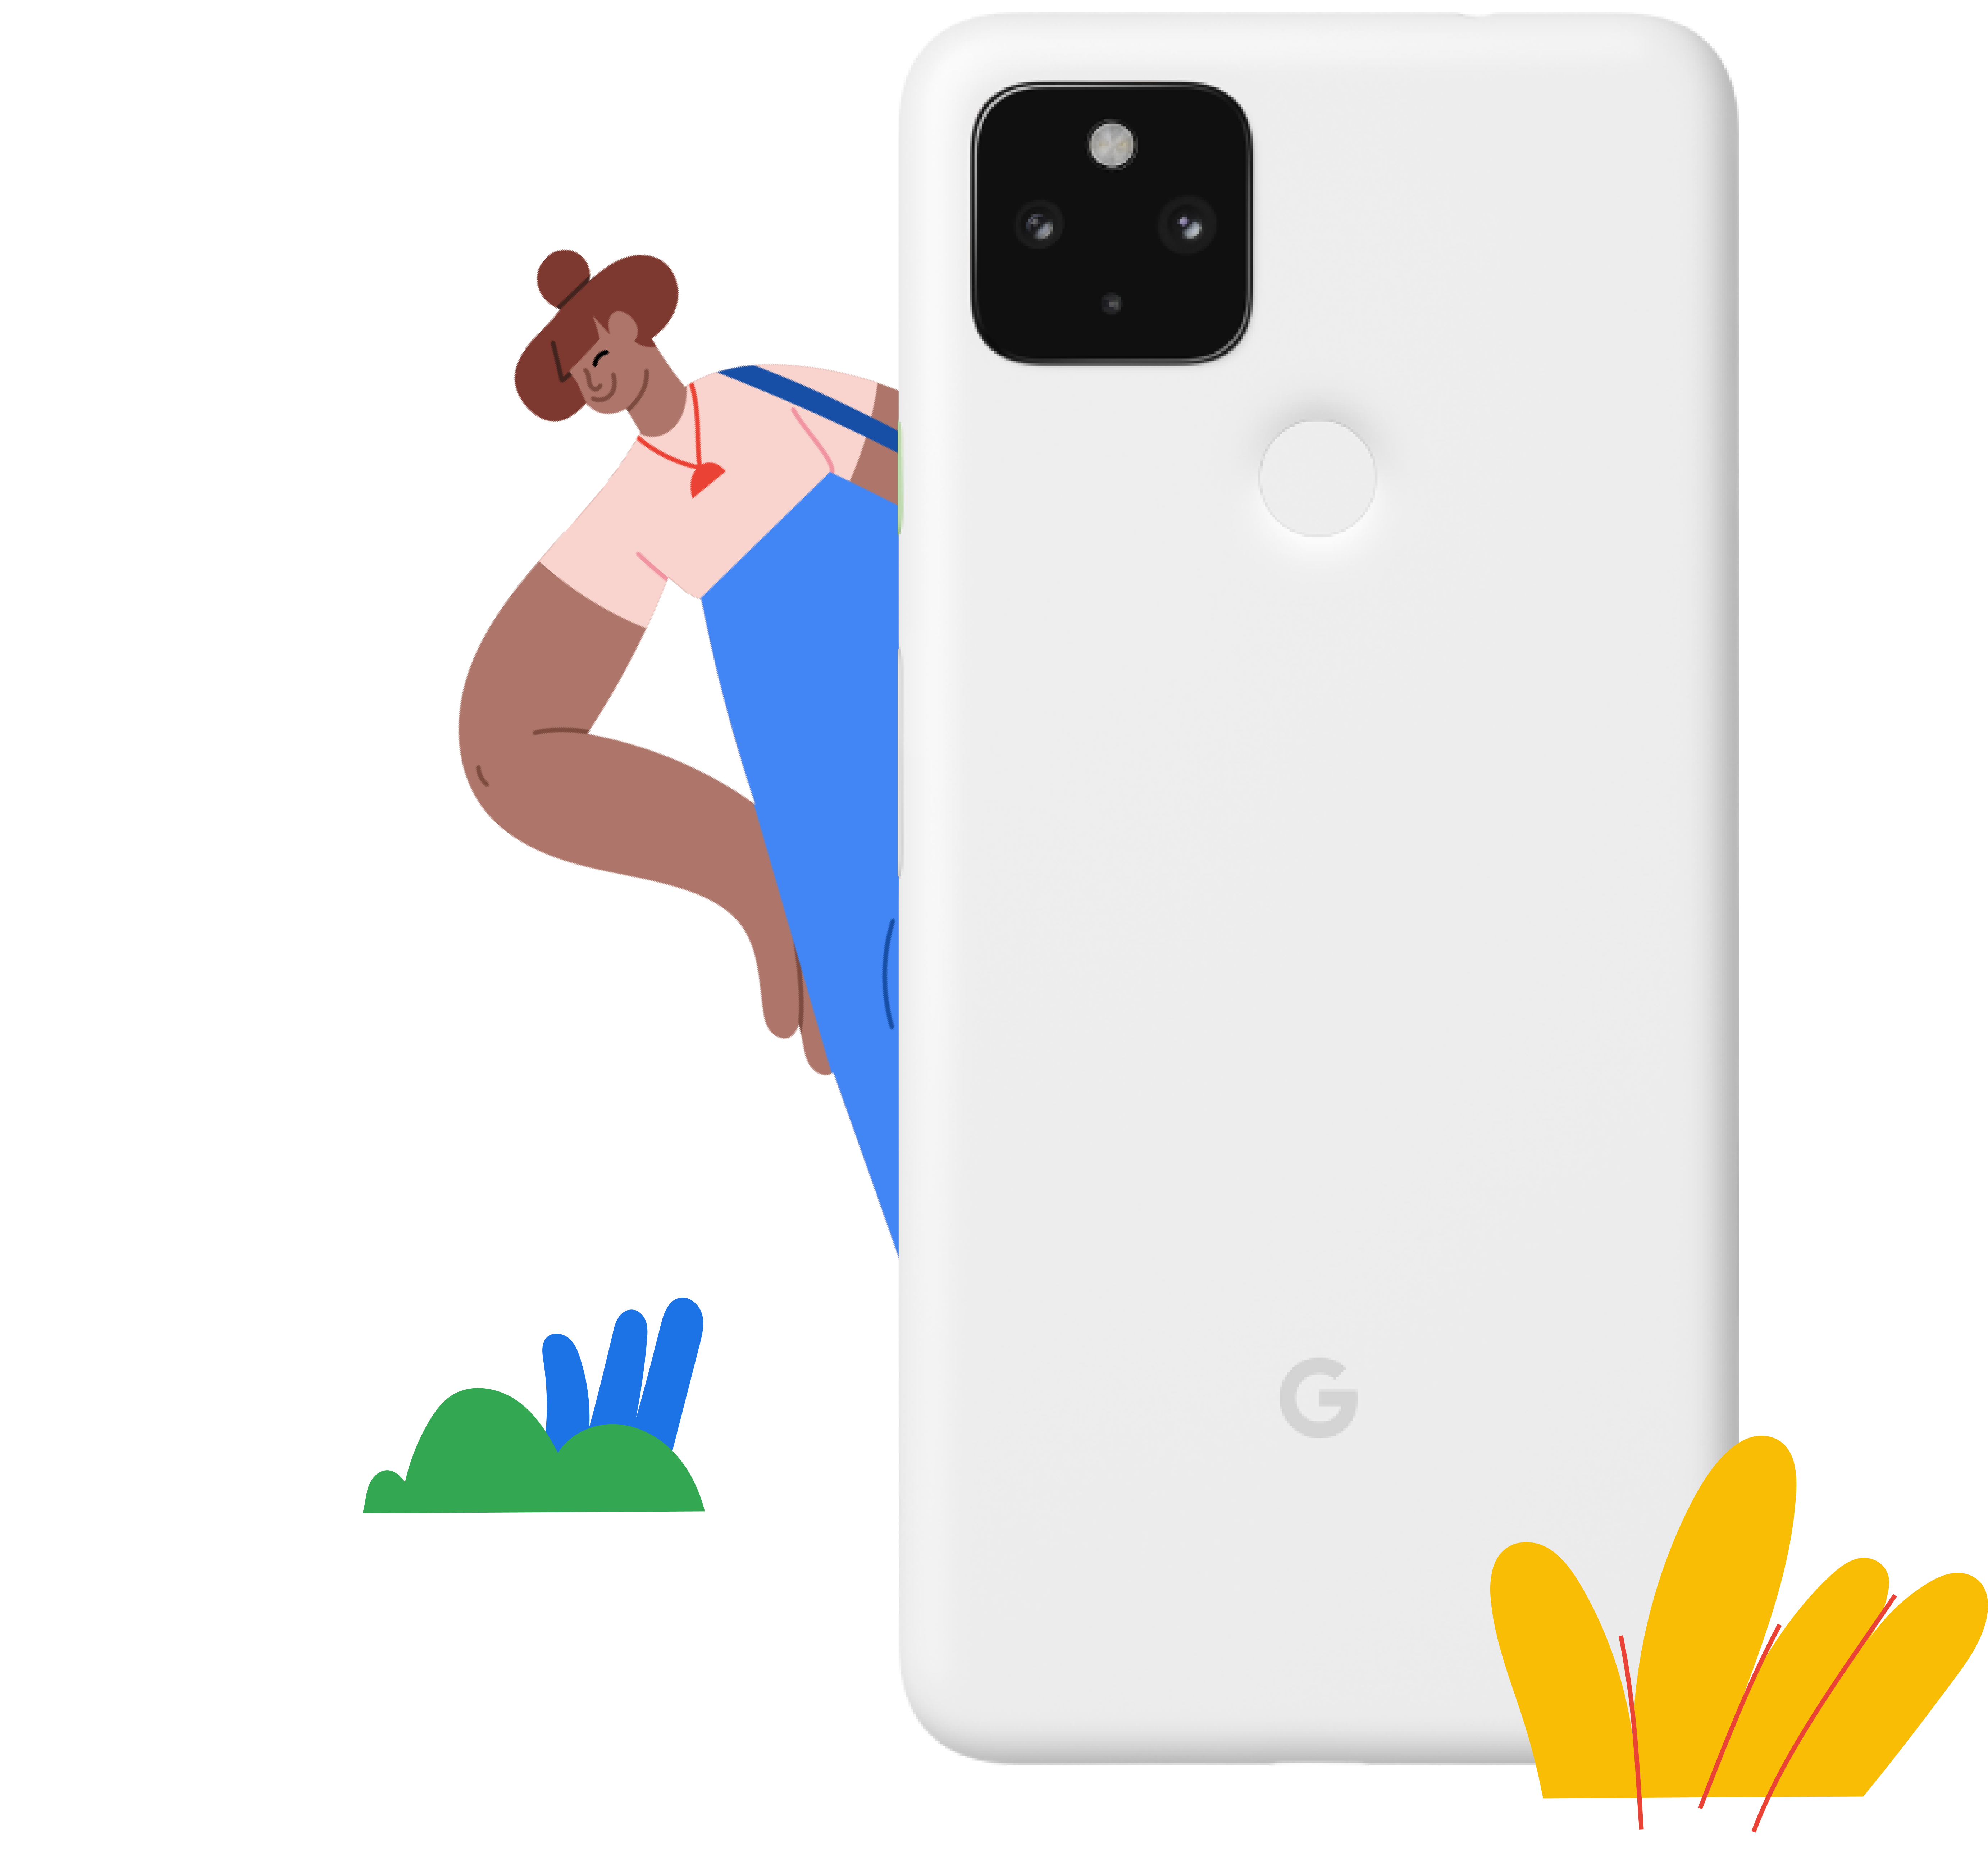 Person behind phone